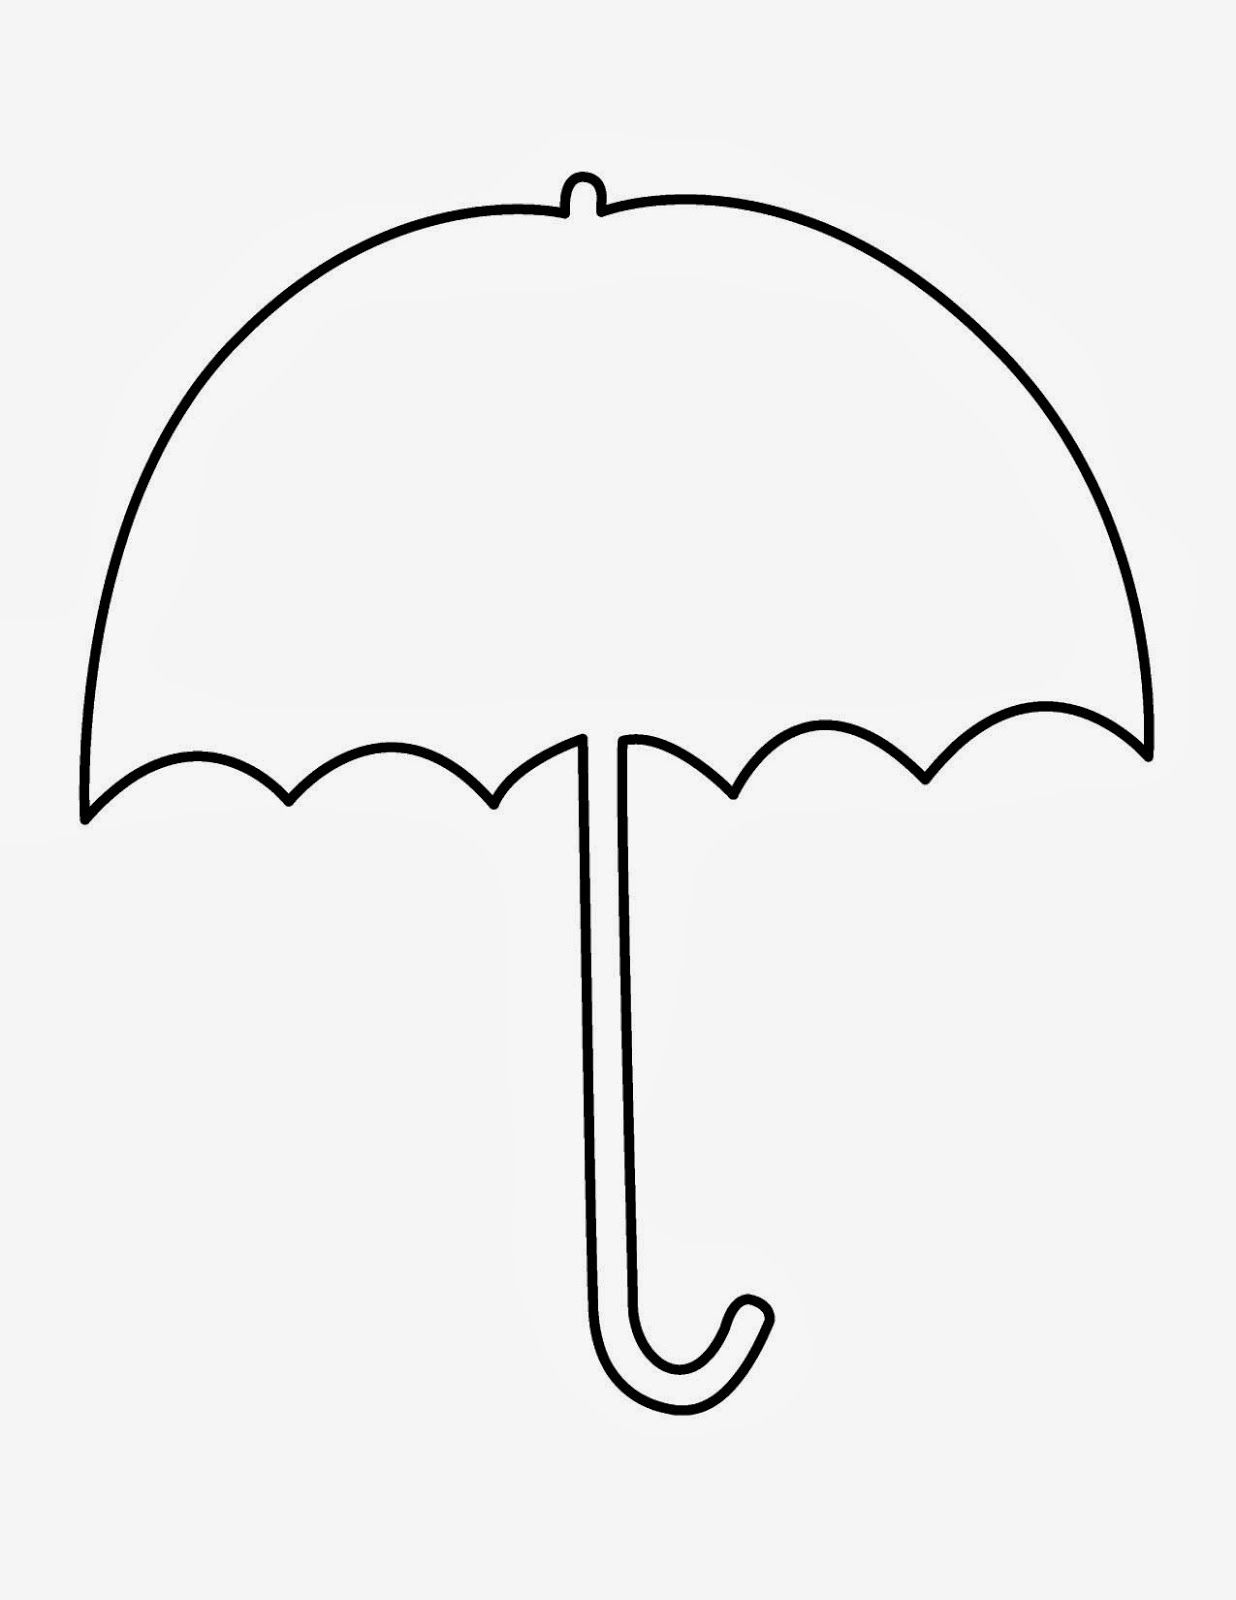 Umbrella clip art to match Yellow Umbrella If you havent read this